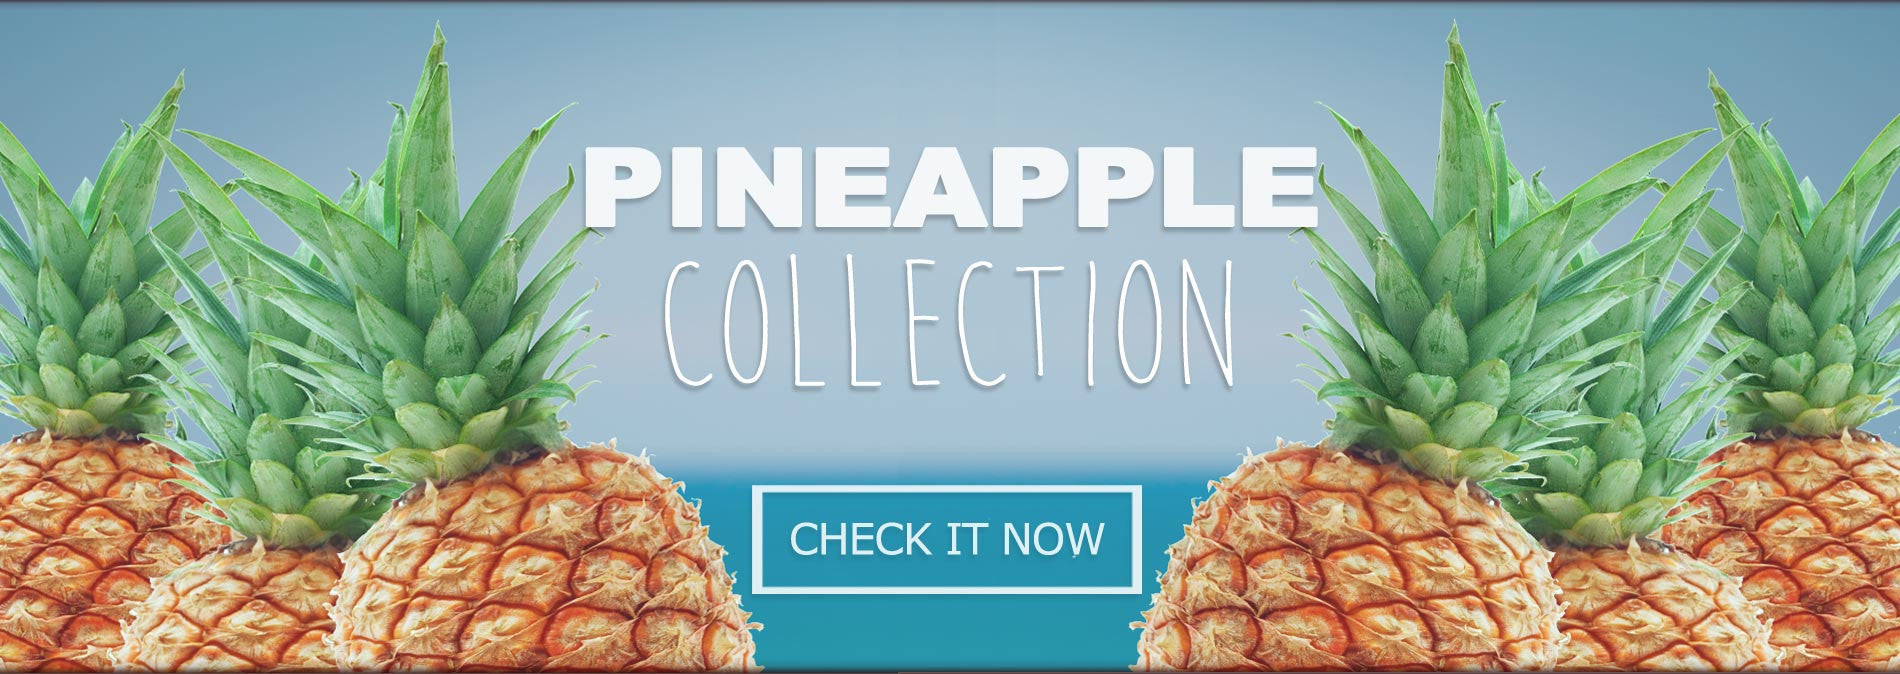 Pineapple Collection